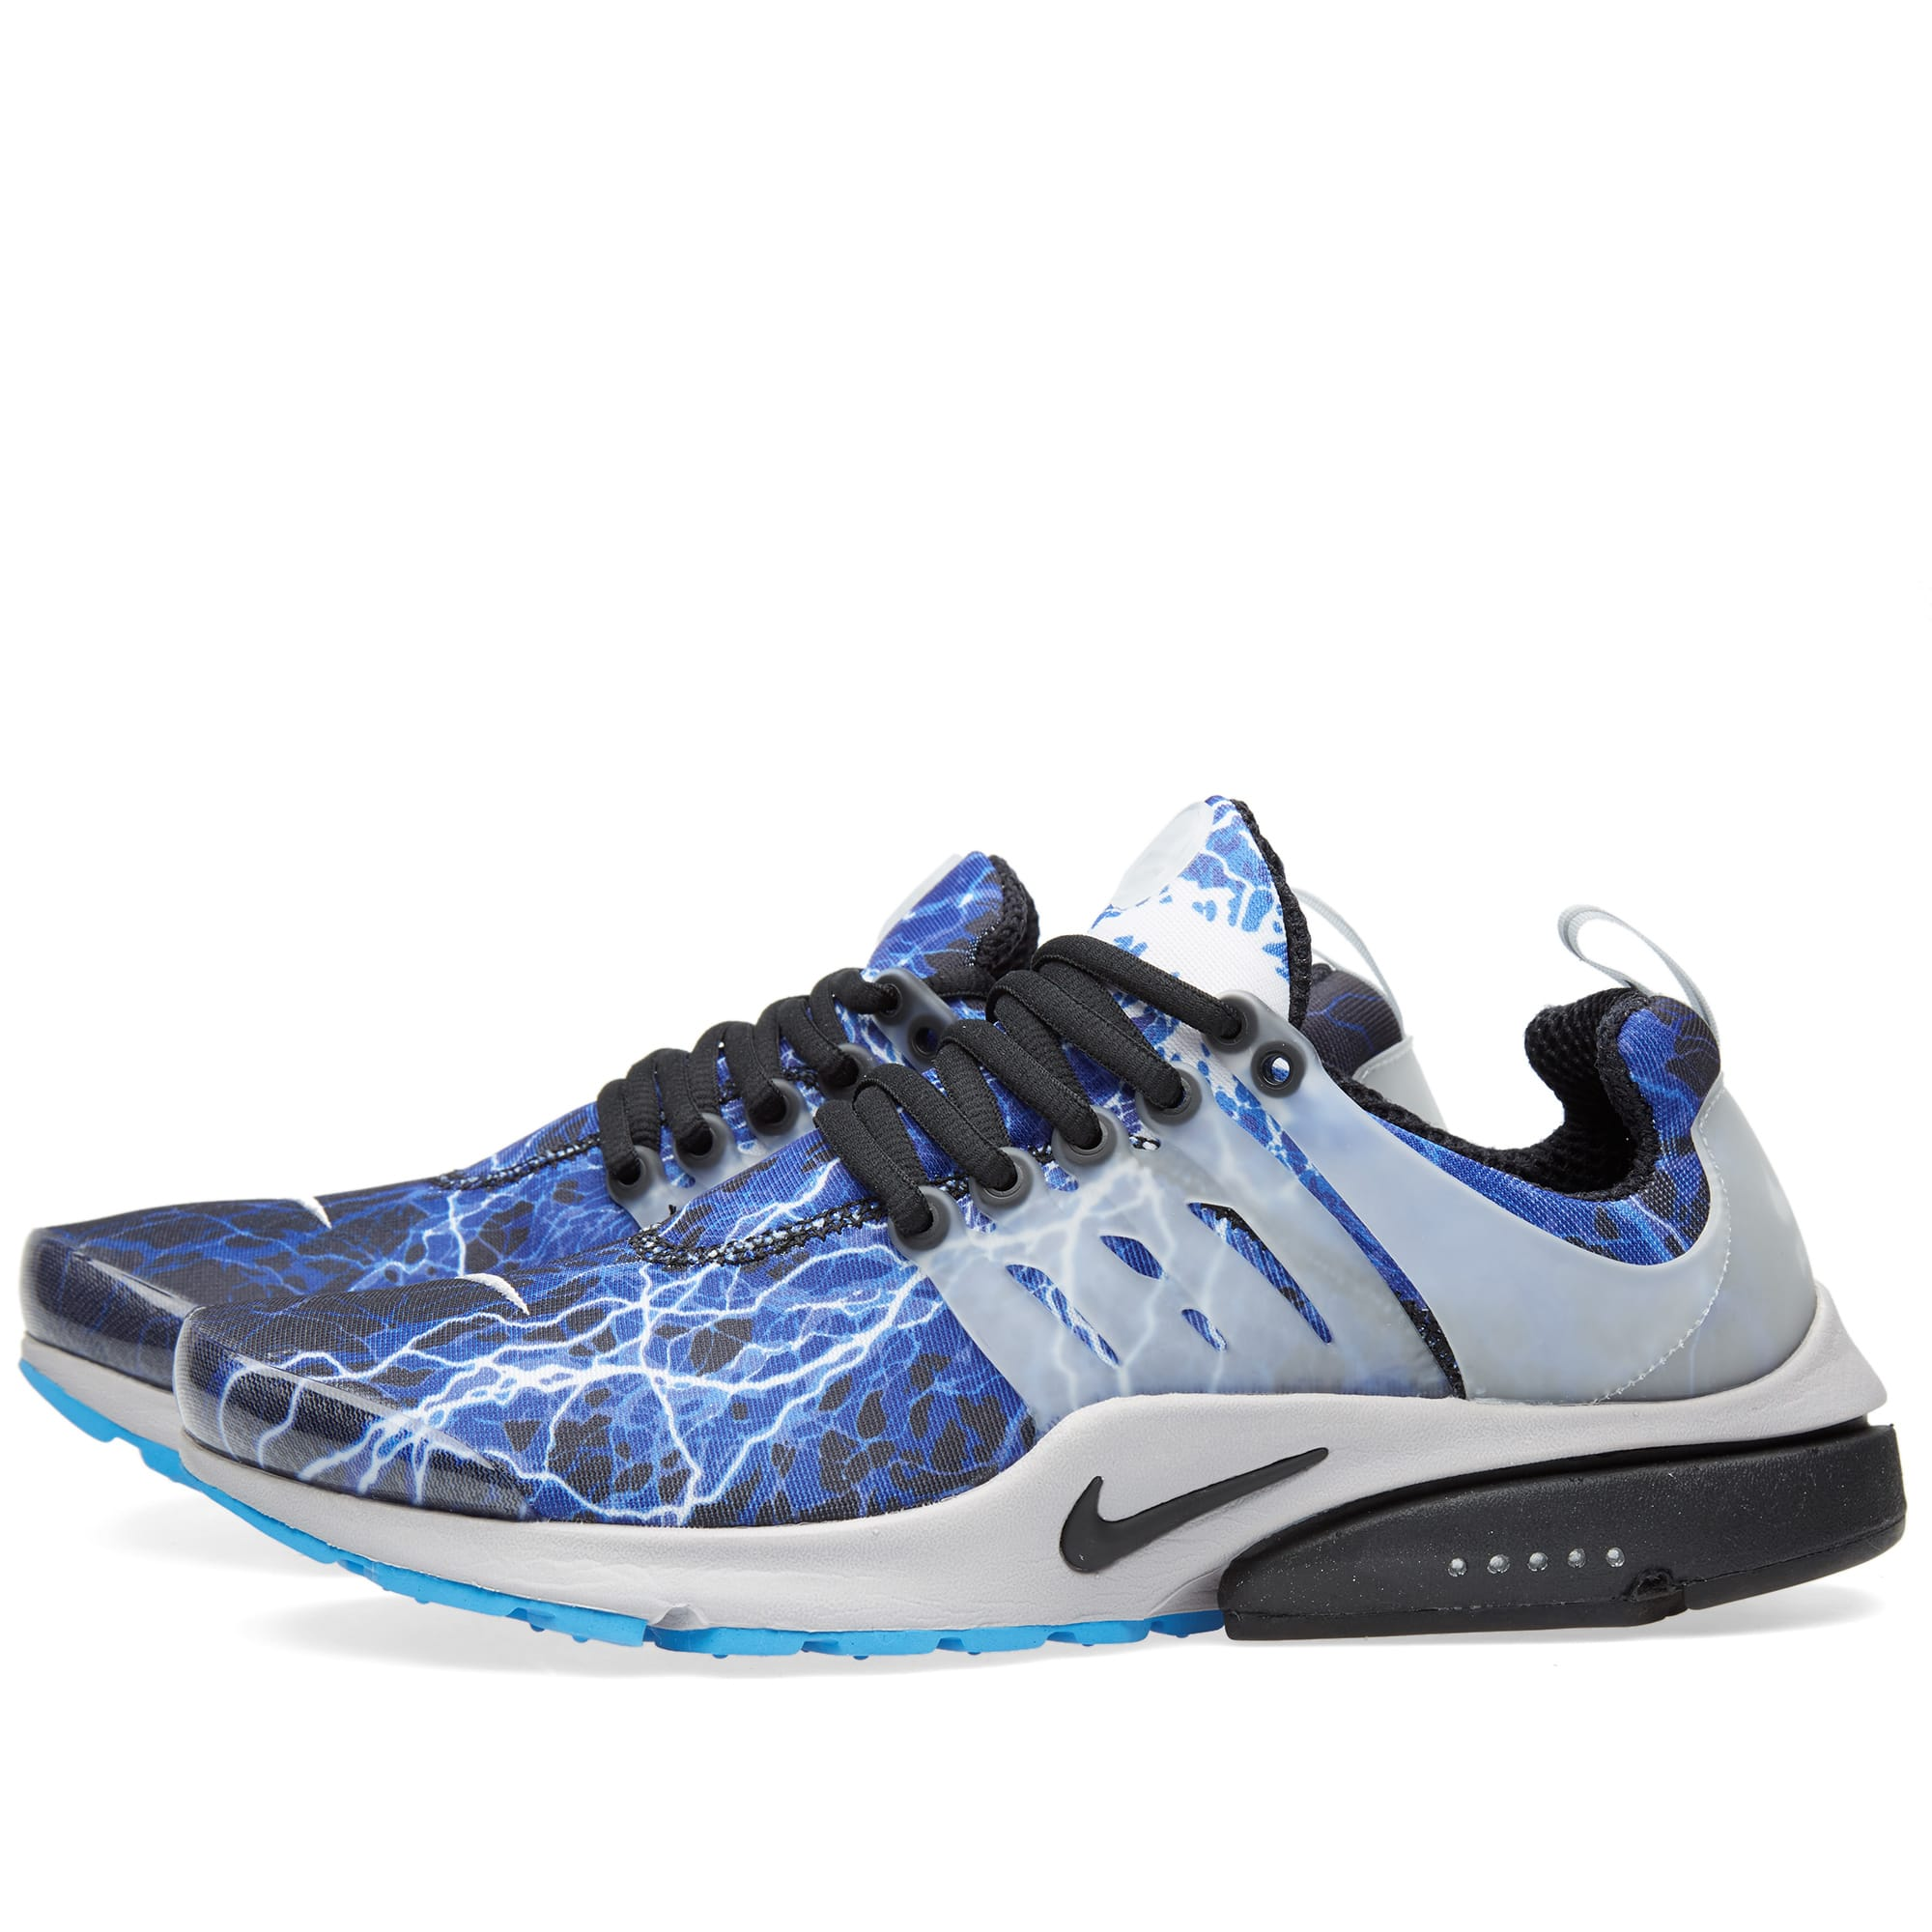 promo code b8213 44e09 Nike Air Presto QS  Lightning  Black, Zen Grey   Harbour Blue   END.